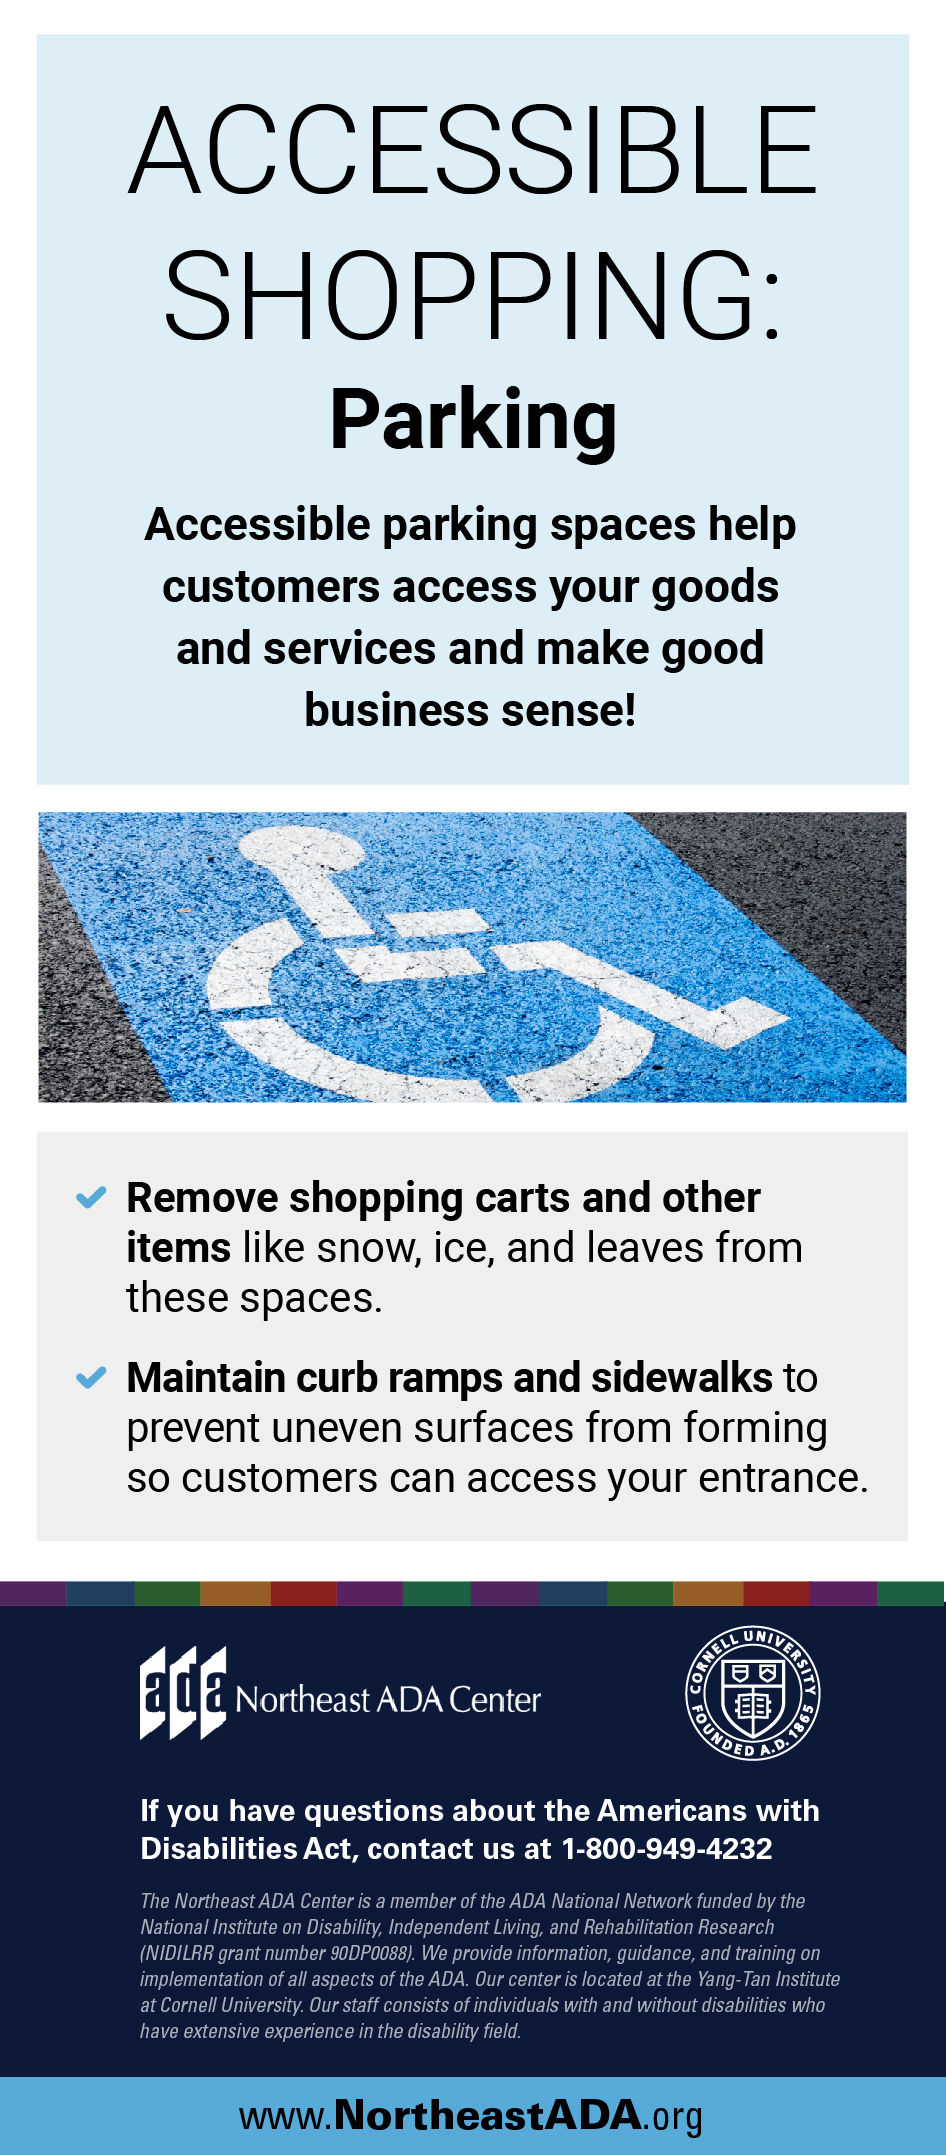 Infographic titled 'Accessible Shopping: Parking' featuring a picture of a parking space with an access symbol.